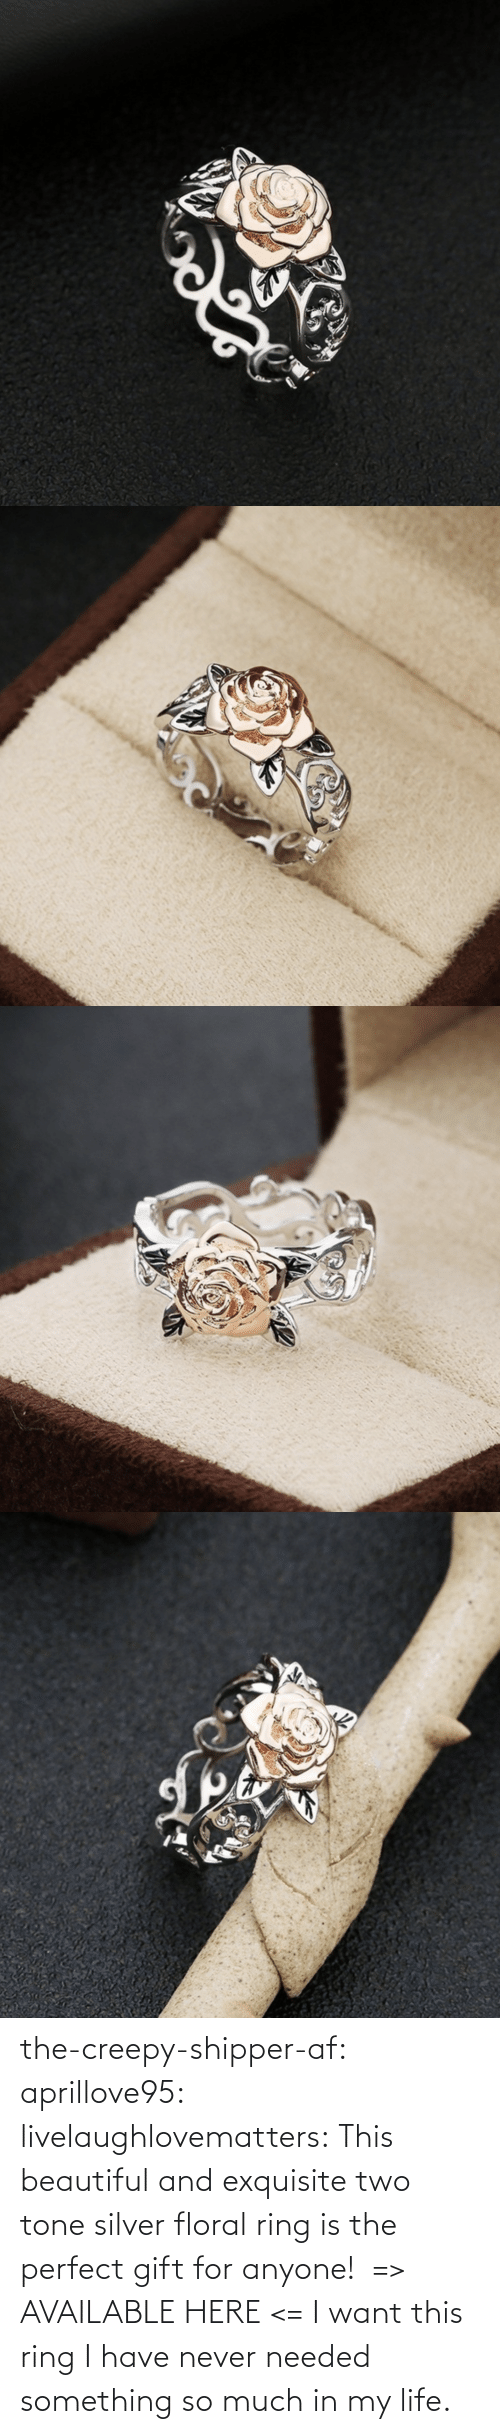 tone: the-creepy-shipper-af: aprillove95:  livelaughlovematters:  This beautiful and exquisite two tone silver floral ring is the perfect gift for anyone!  => AVAILABLE HERE <=    I want this ring   I have never needed something so much in my life.